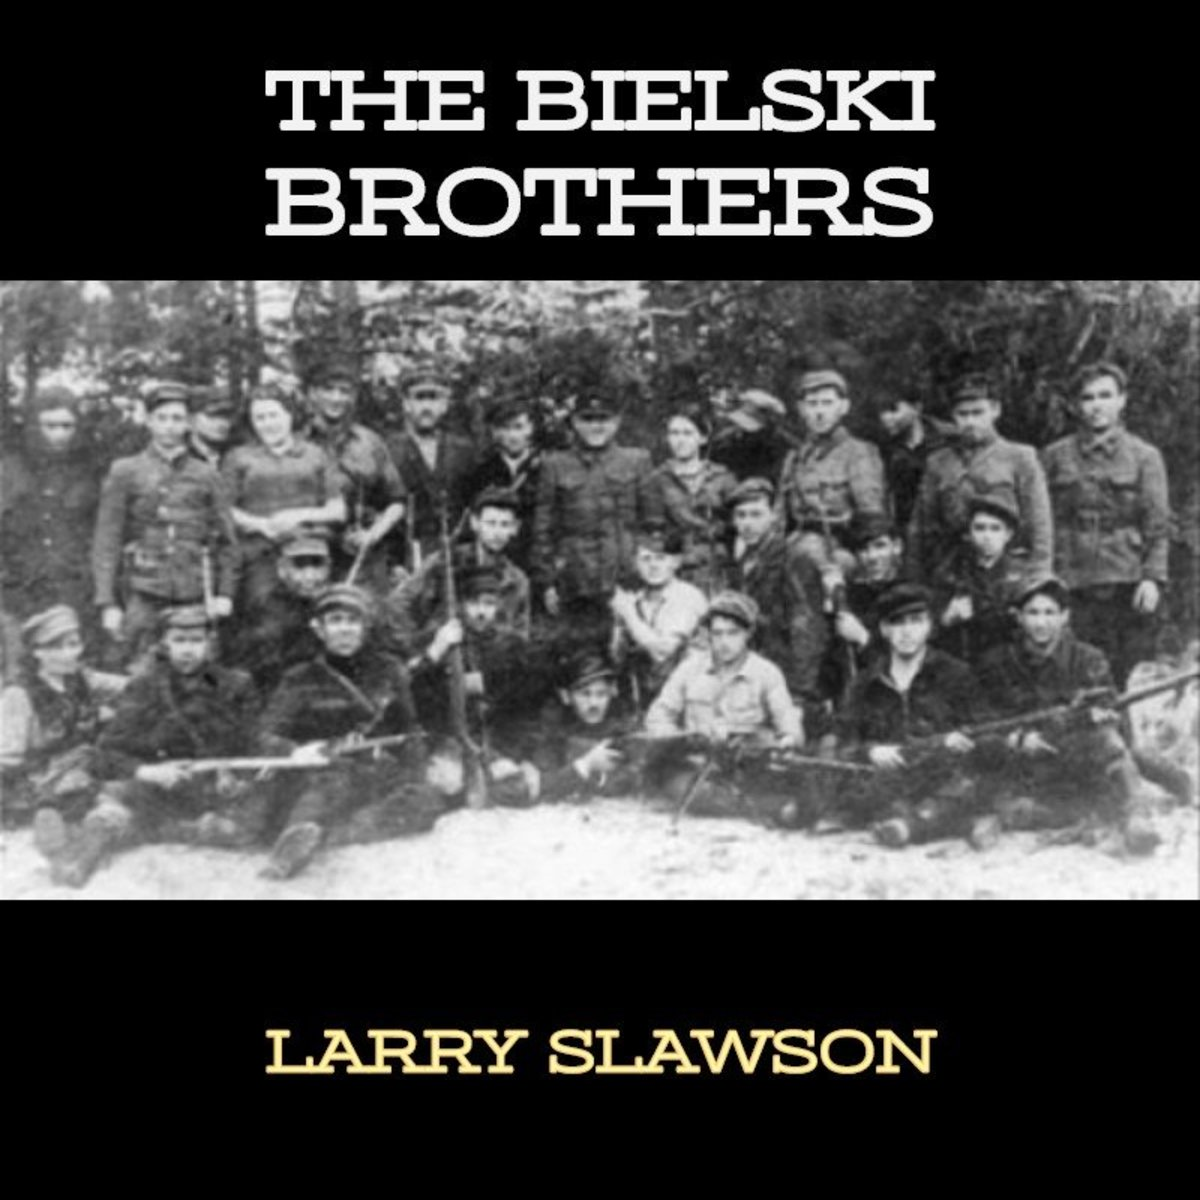 The Bielski Brothers: A Brief History